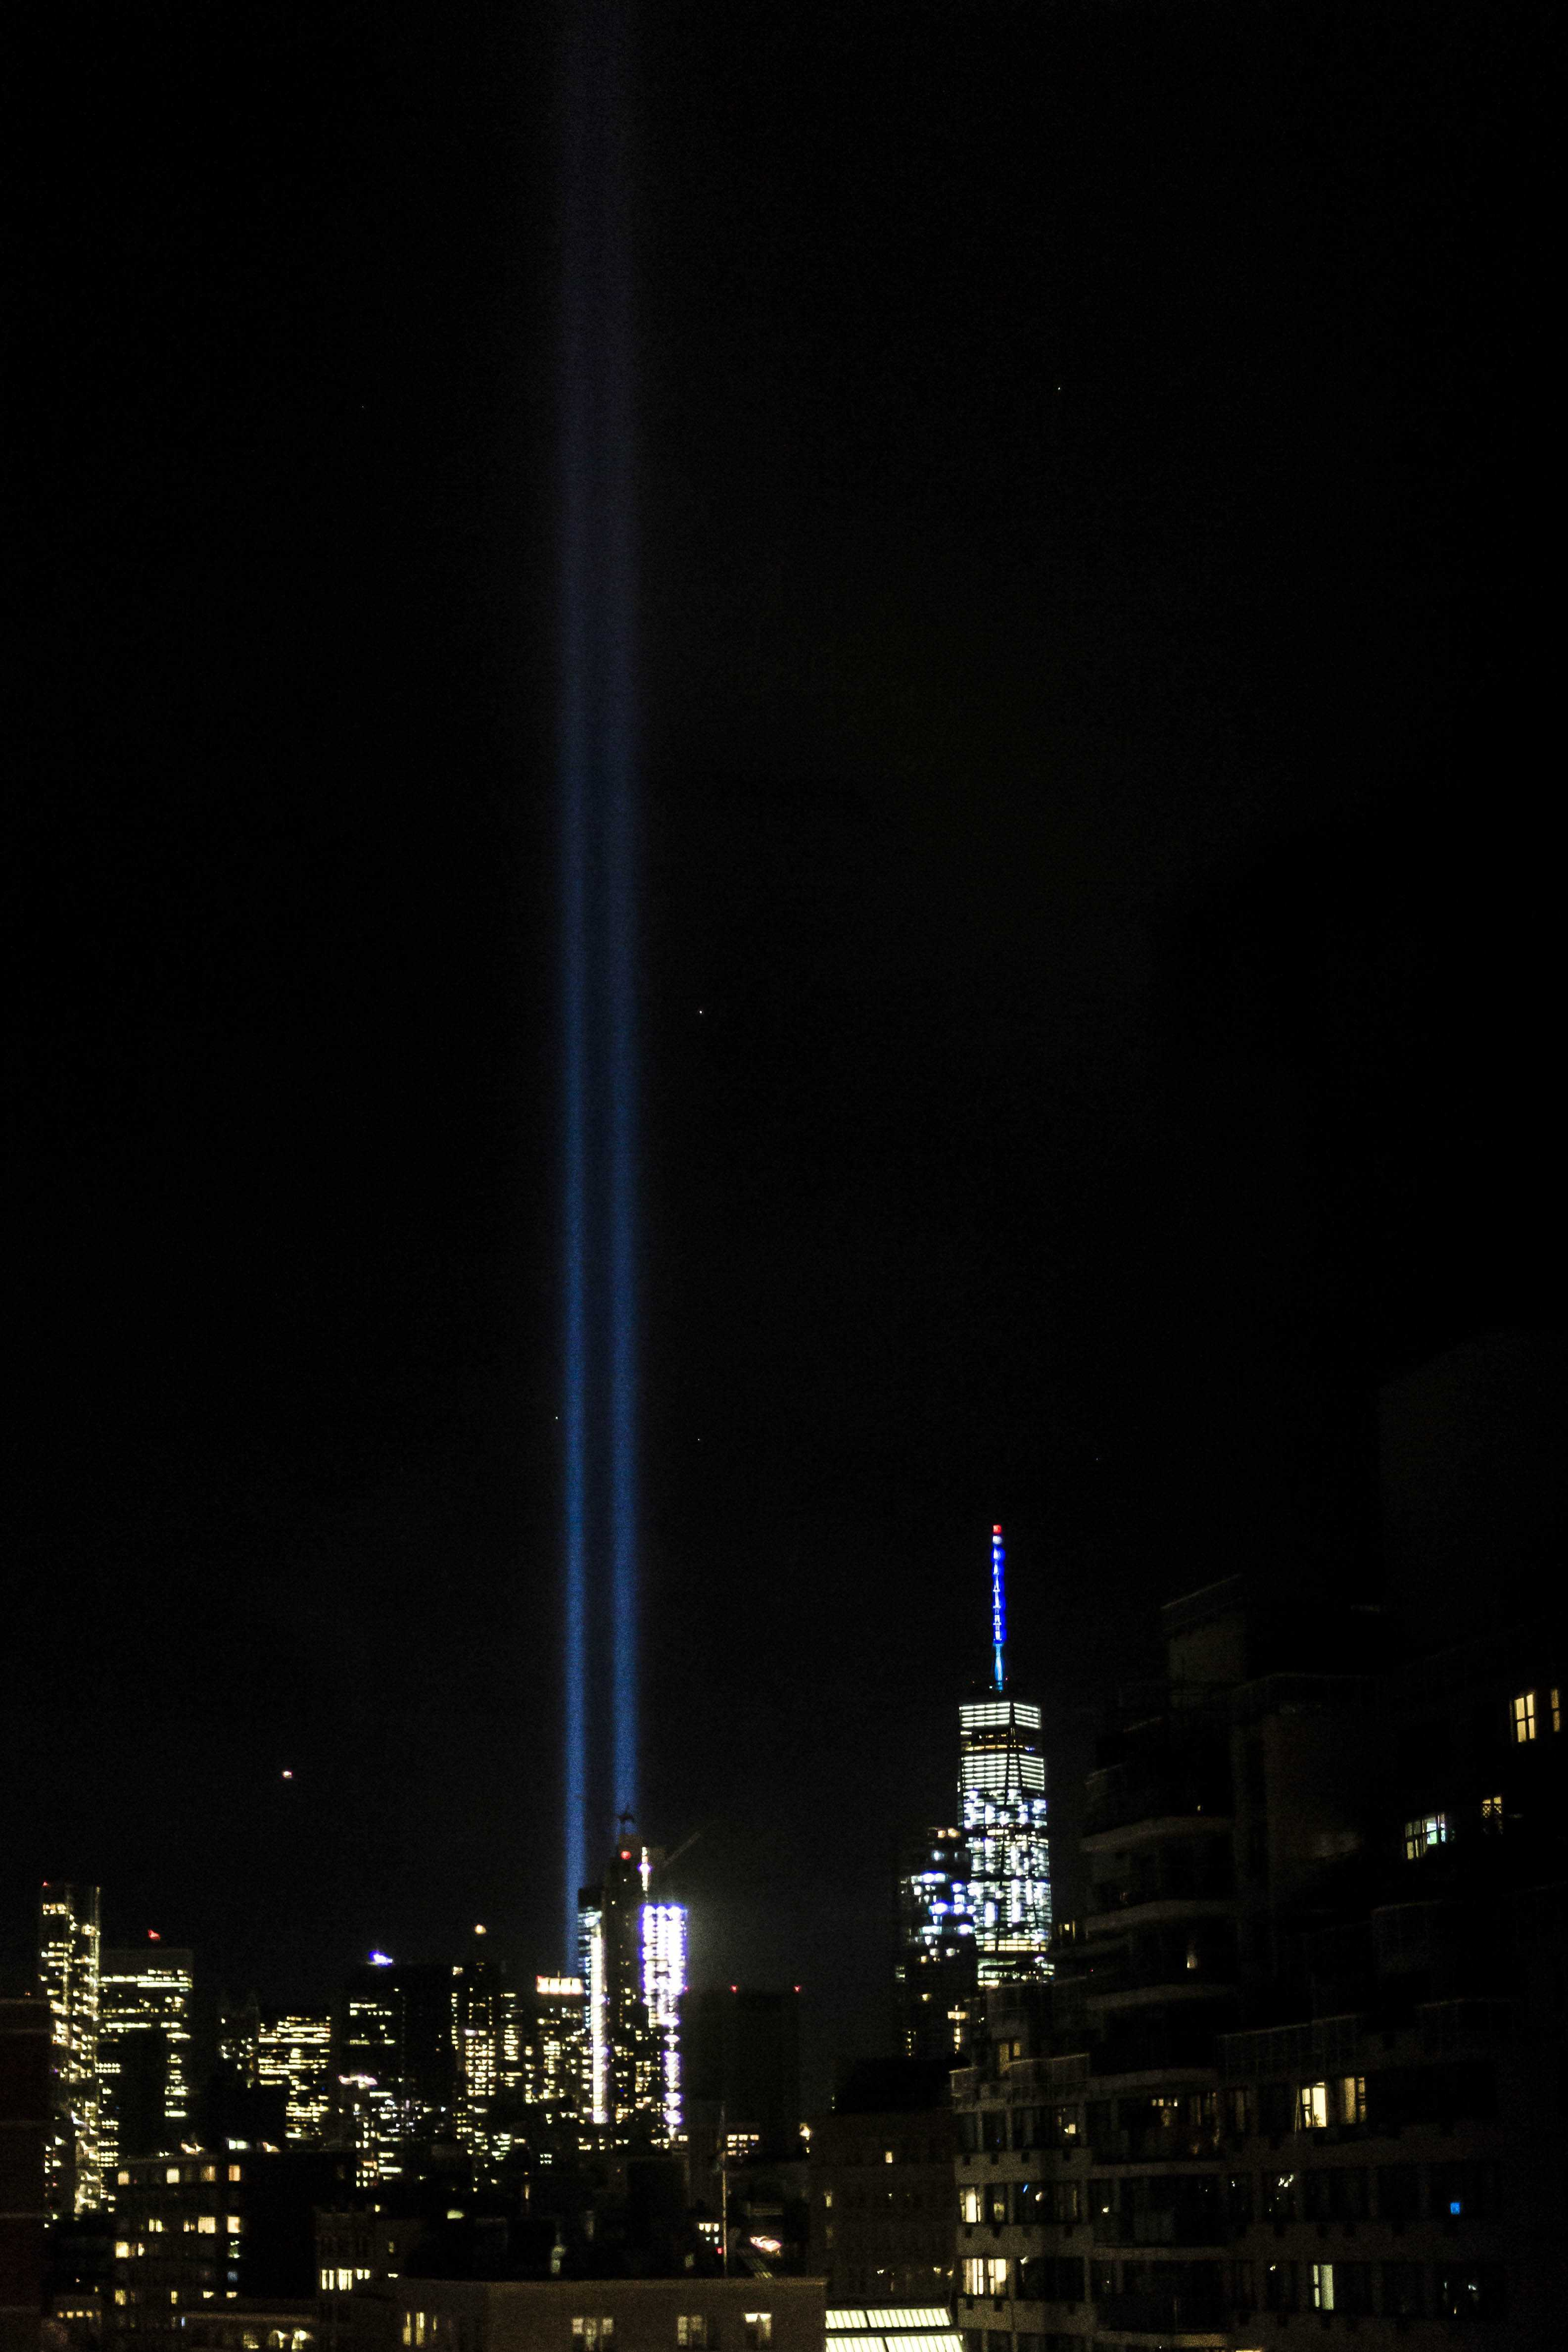 Two bright beams shine from the 9/11 Memorial's reflecting pools, marking the sky with a ghost of where the Twin Towers once stood.